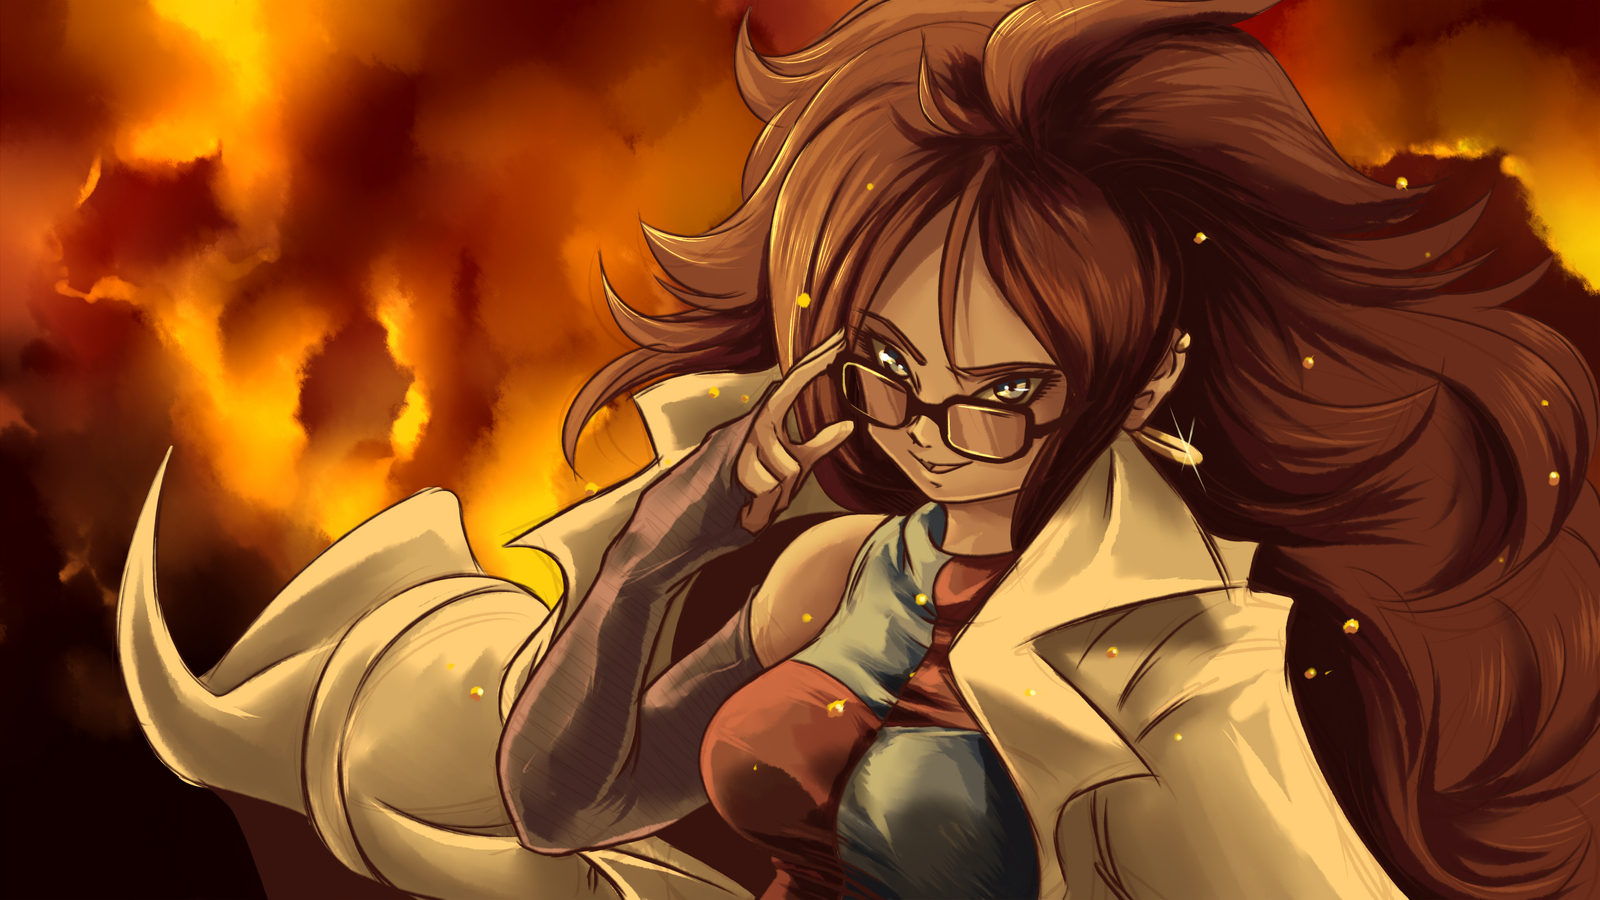 1600x900 Android 21 Dragon Ball Fighterz 1600x900 Resolution